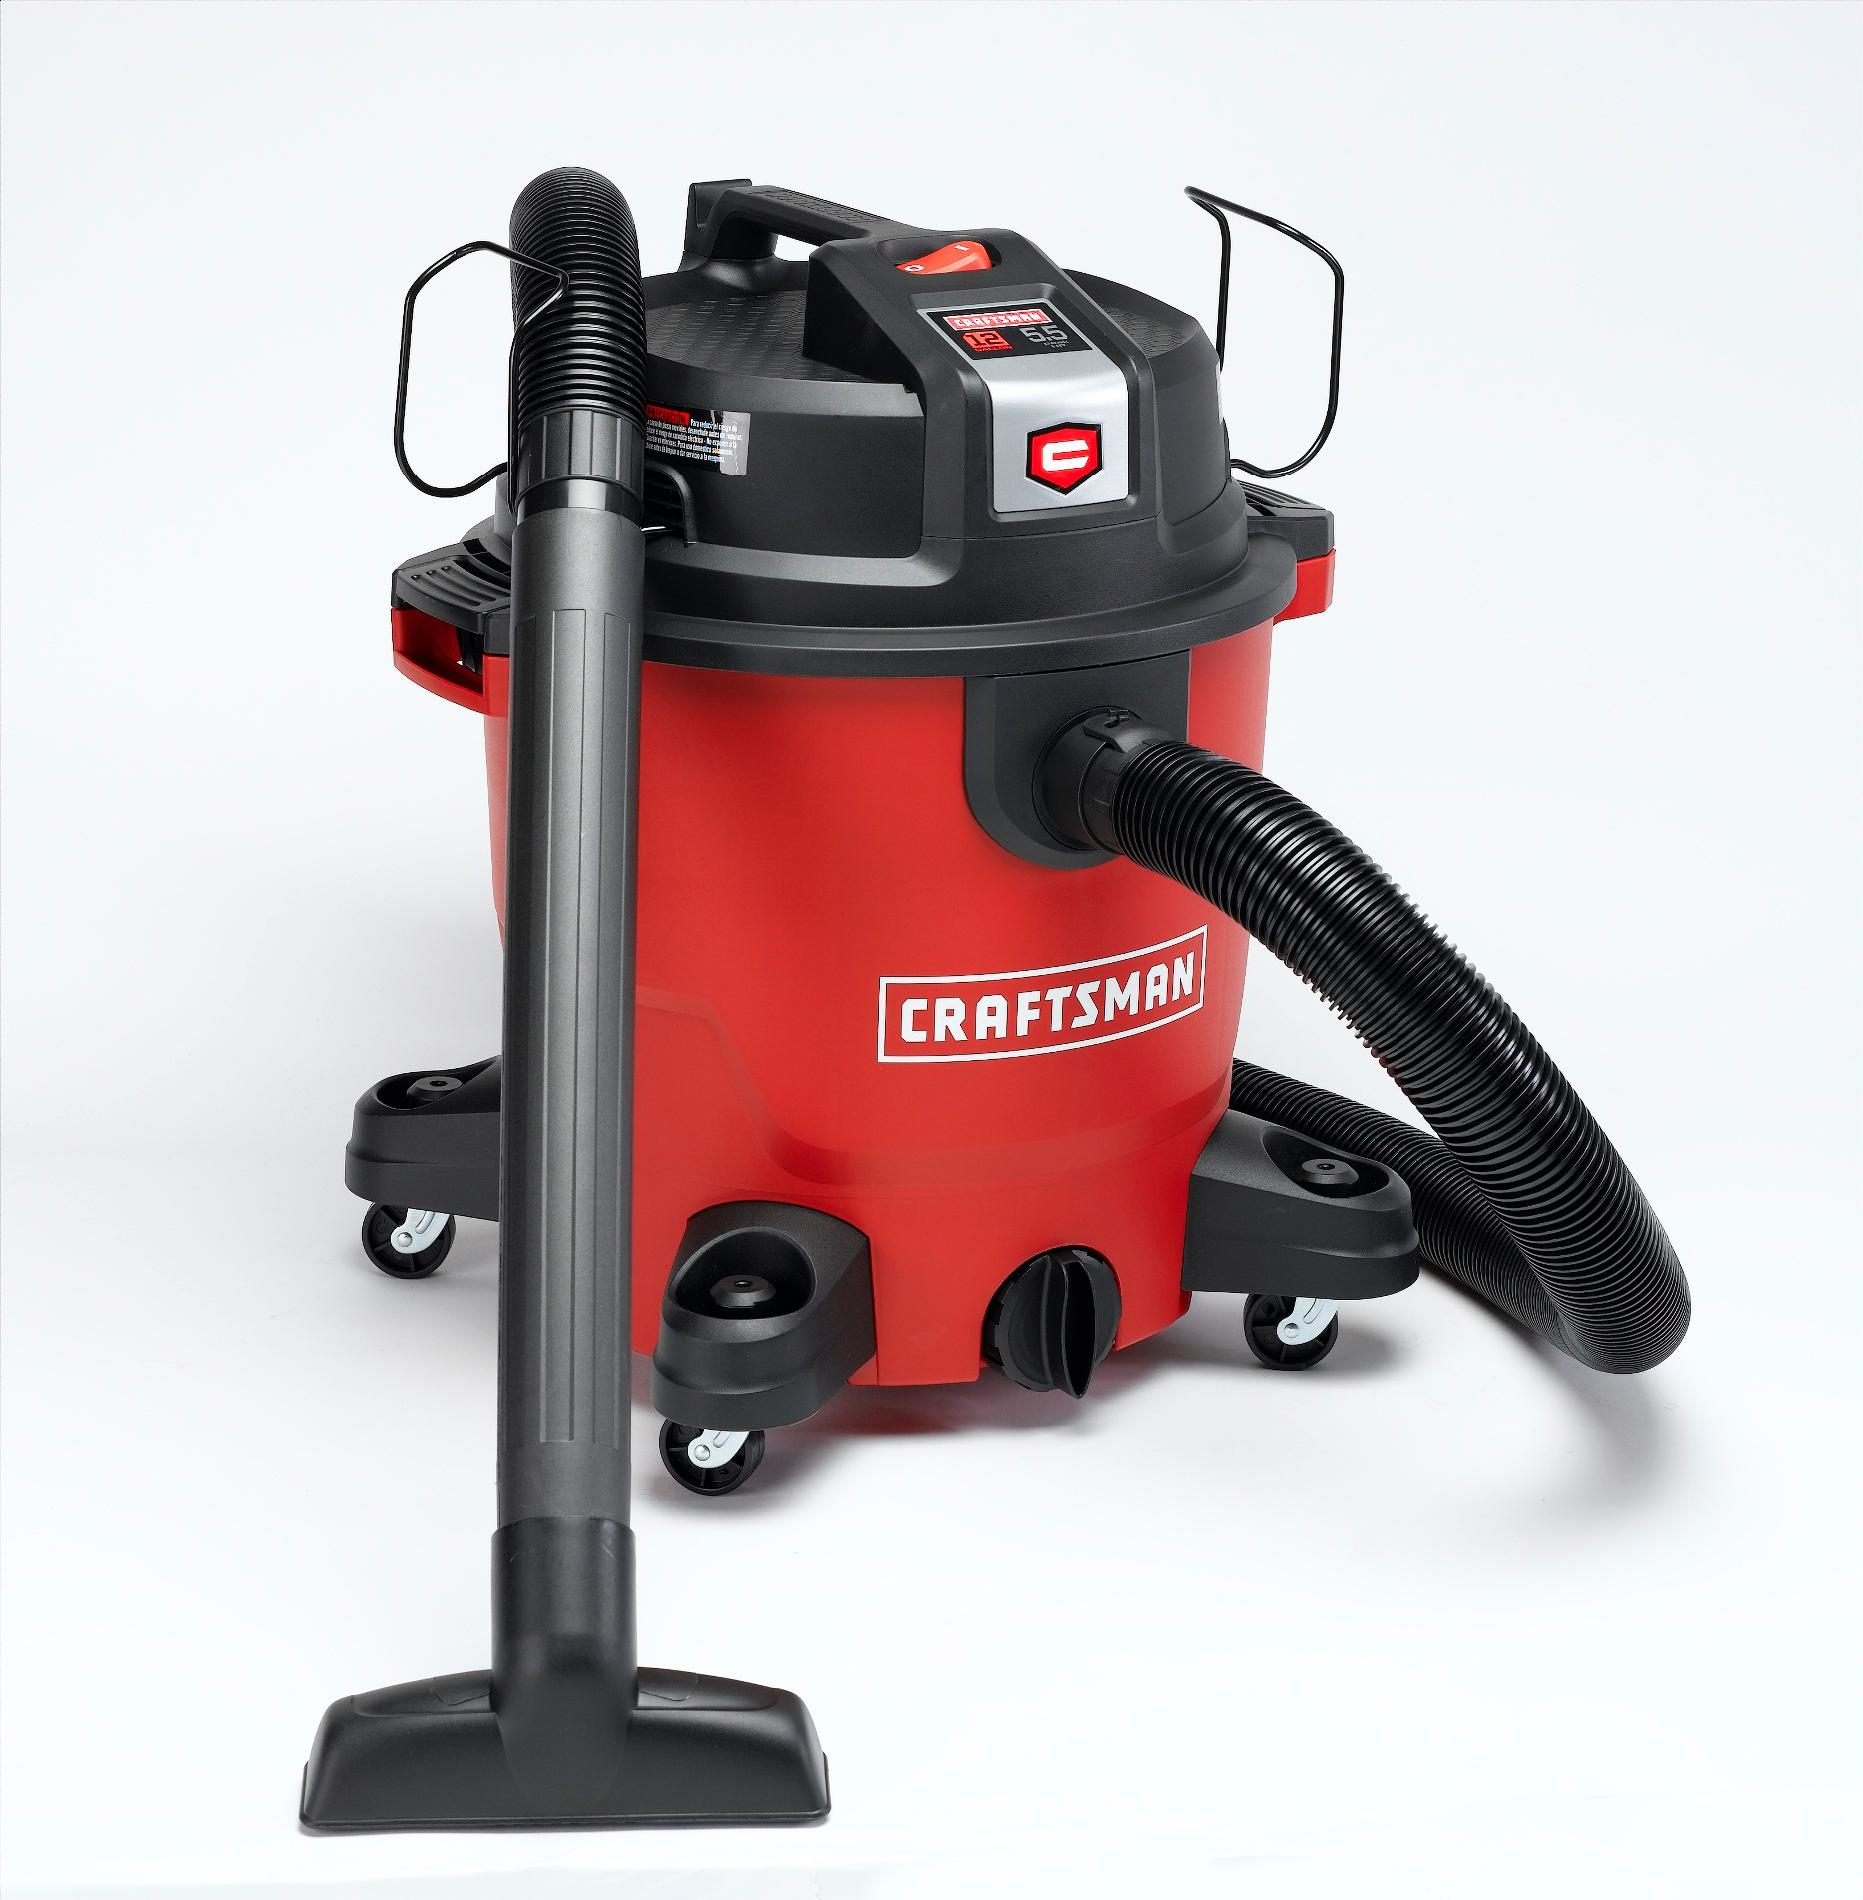 Craftsman  XSP 12 Gallon 5.5 Peak HP